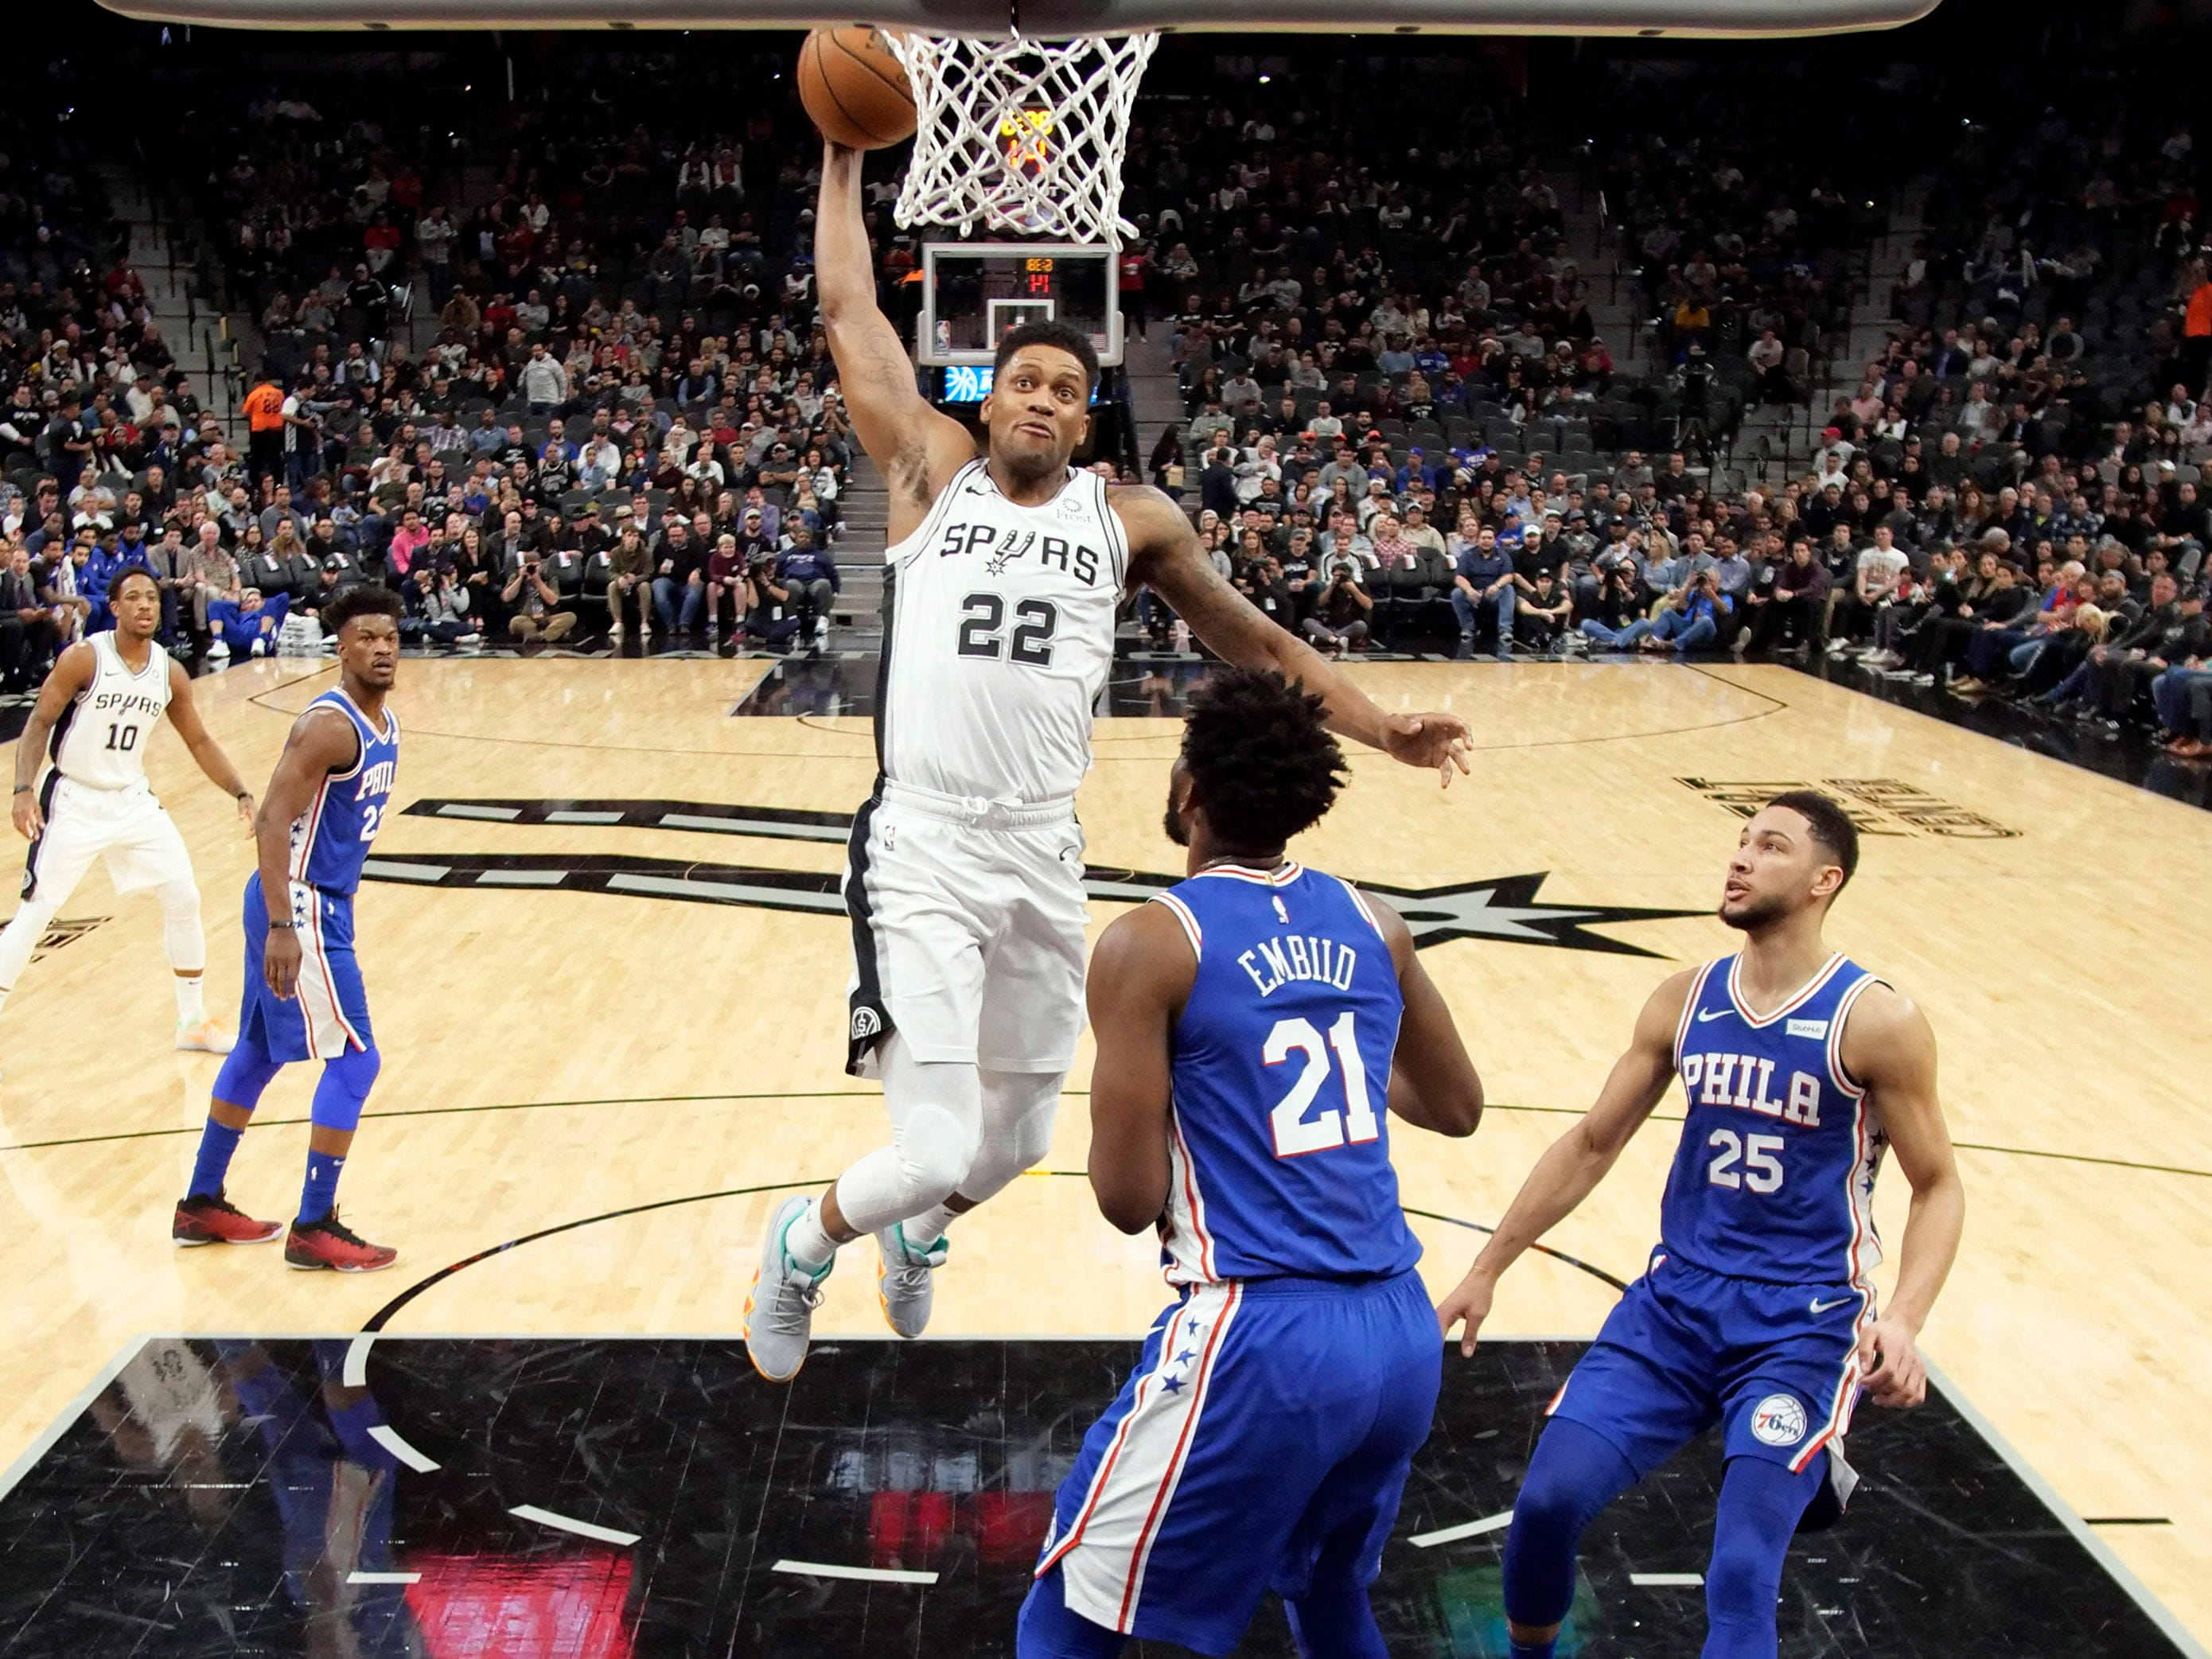 Dec. 17: Spurs small forward Rudy Gay goes in for a dunk as 76ers center Joel Embiid looks on during the first half at AT&T Center.